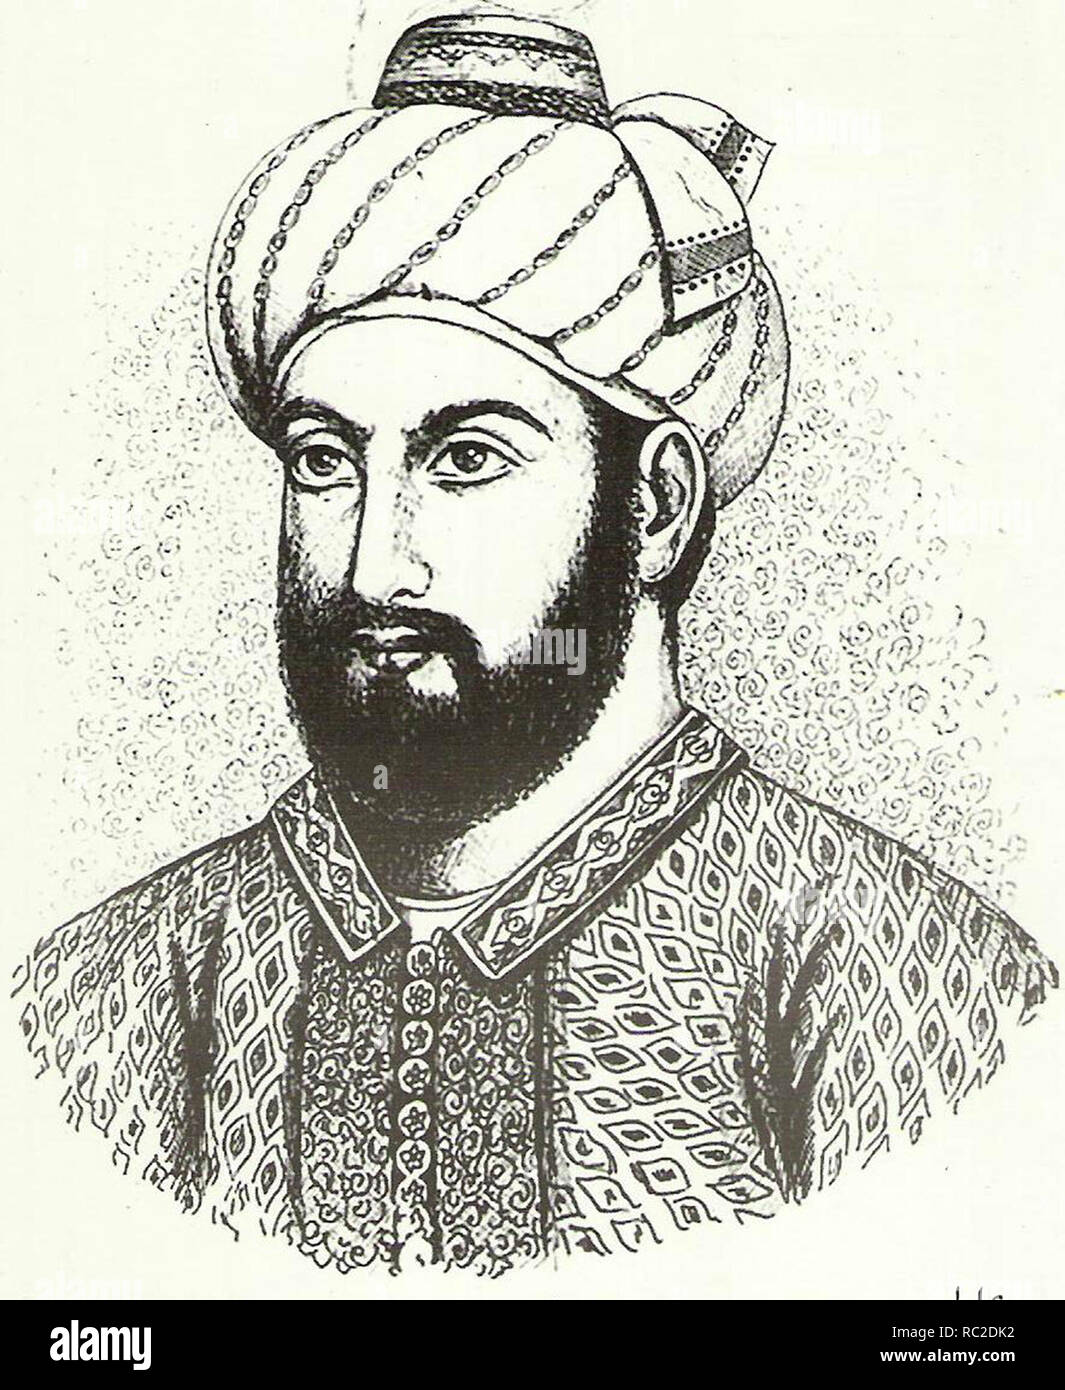 Timur Shah Durrani Sadozai, (1748 – 1793) second ruler of the Durrani Empire, from October 16, 1772 until his death in 1793. - Stock Image